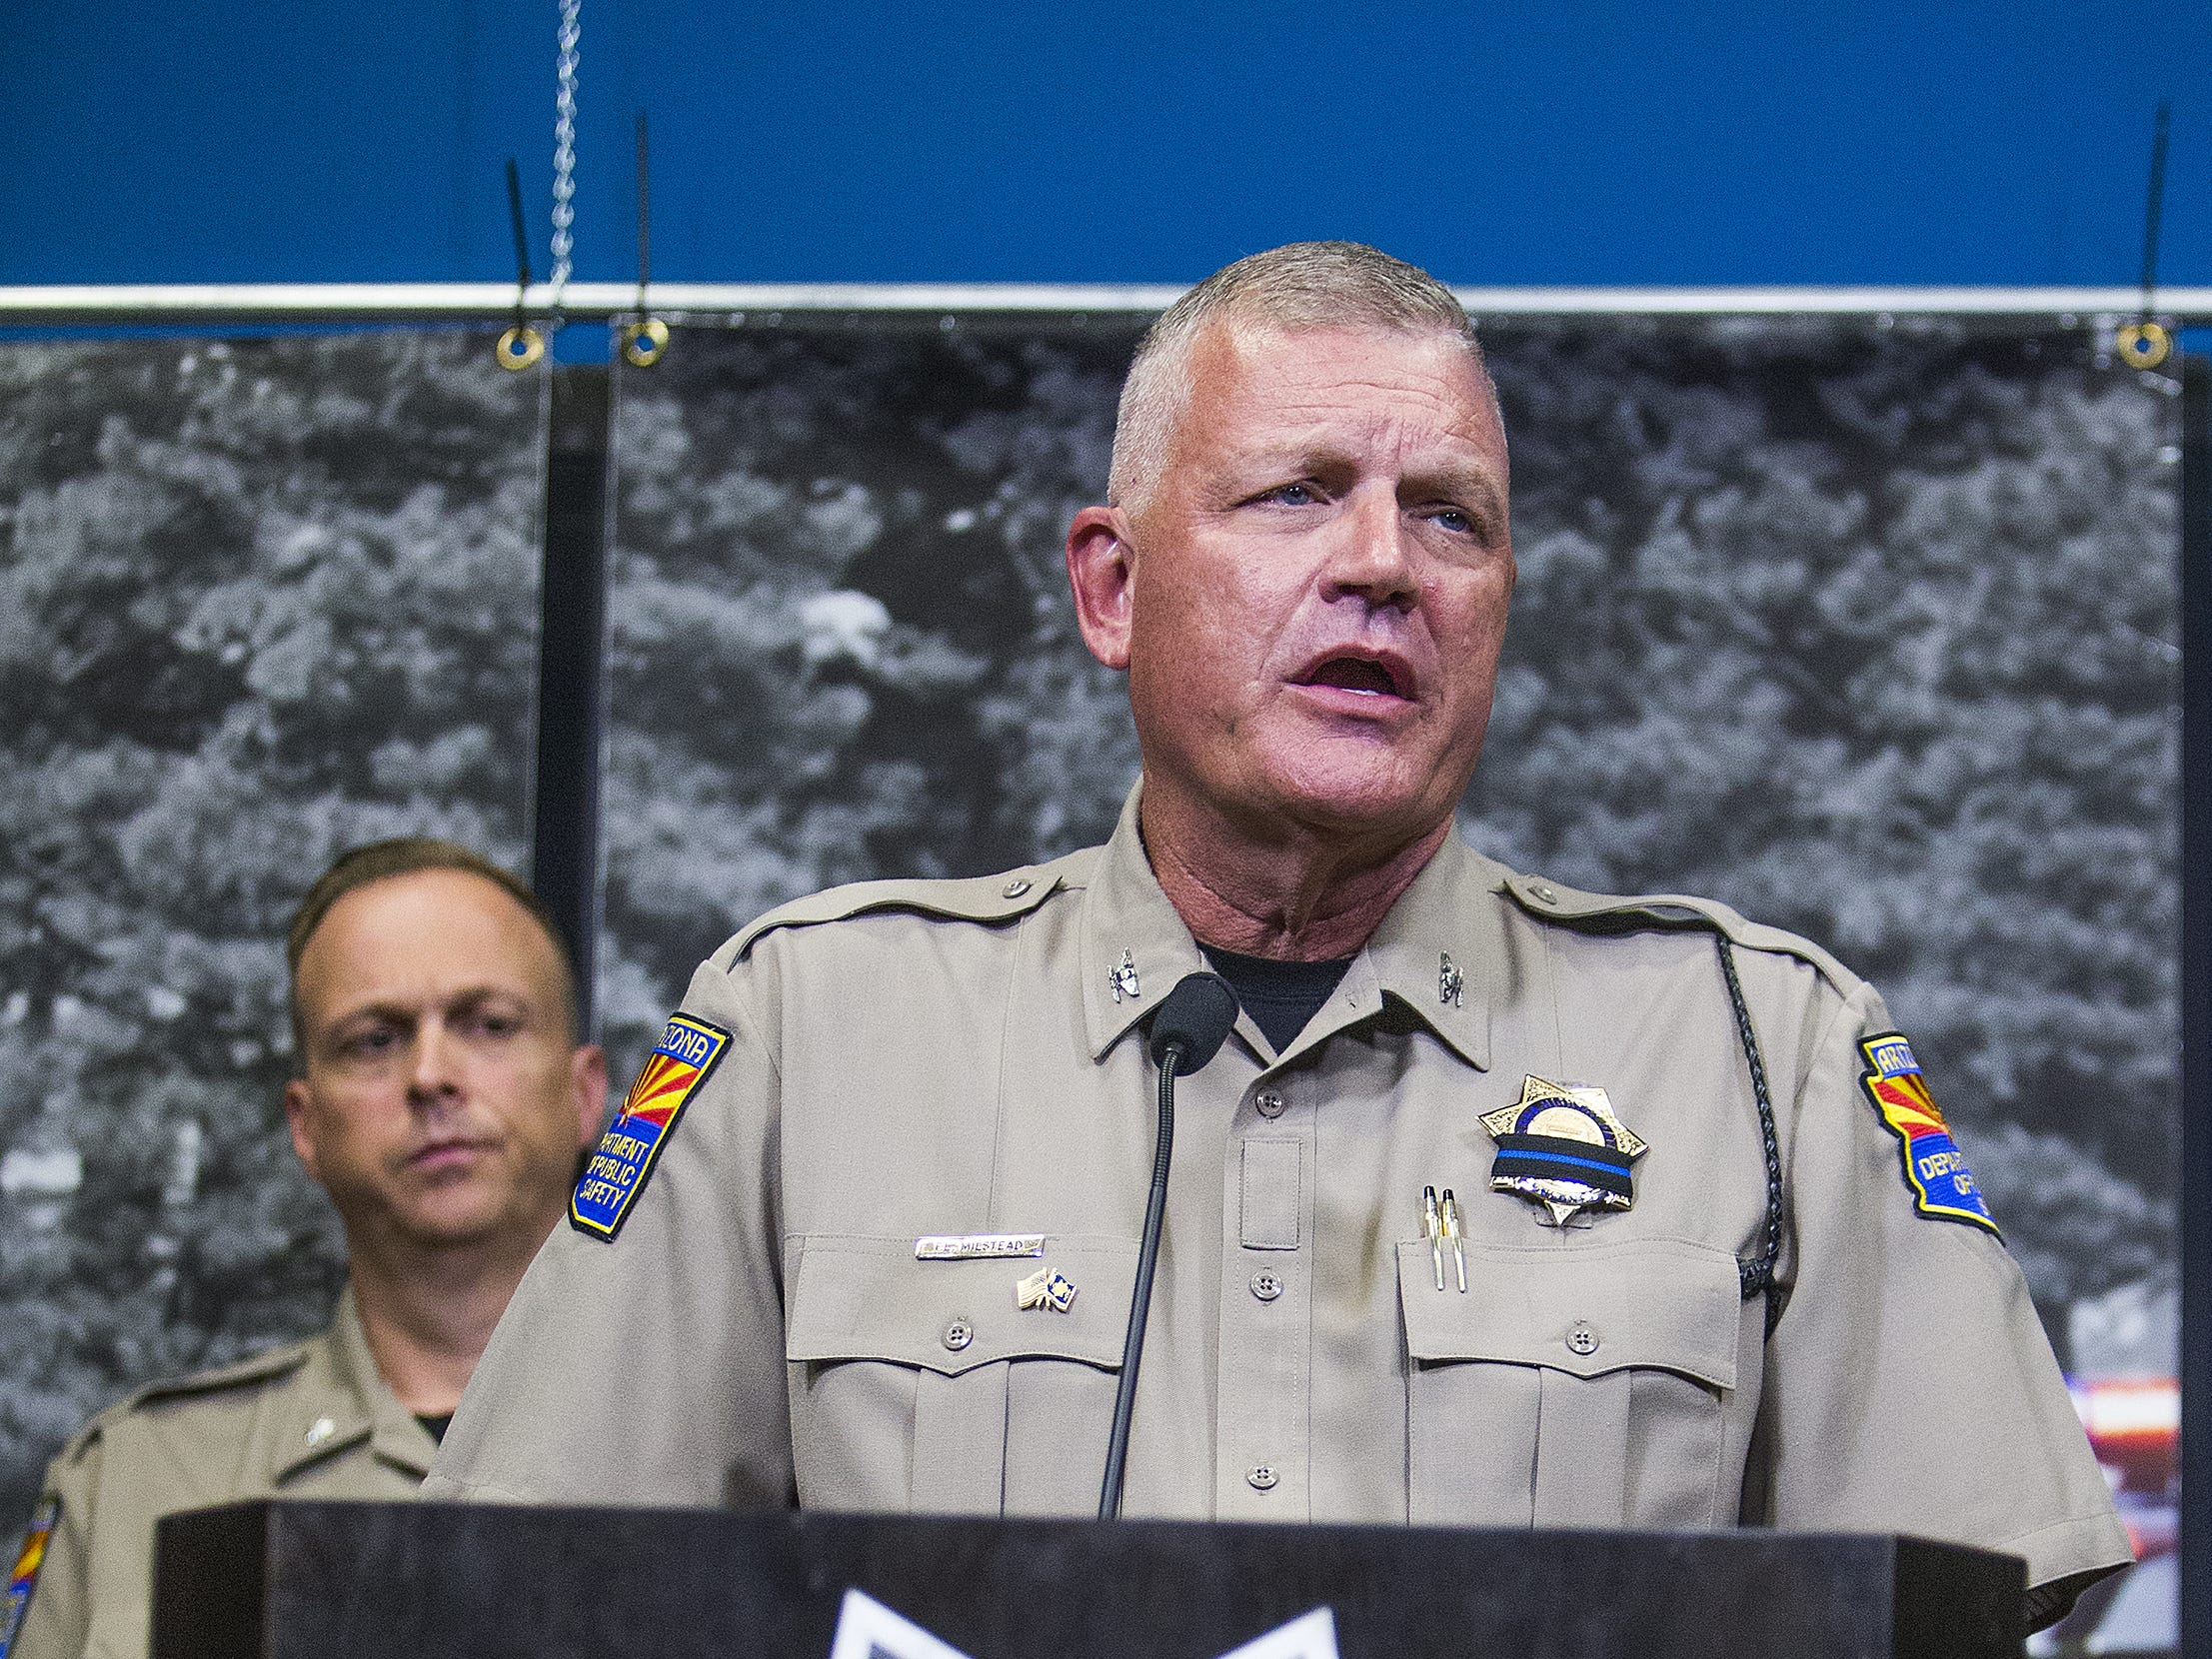 Col. Frank Milstead, director of the Arizona Department of Public Safety in Phoenix, answers questions from the media during a press conference, on July 26, 2018, regarding the death of DPS trooper Tyler Edenhofer.